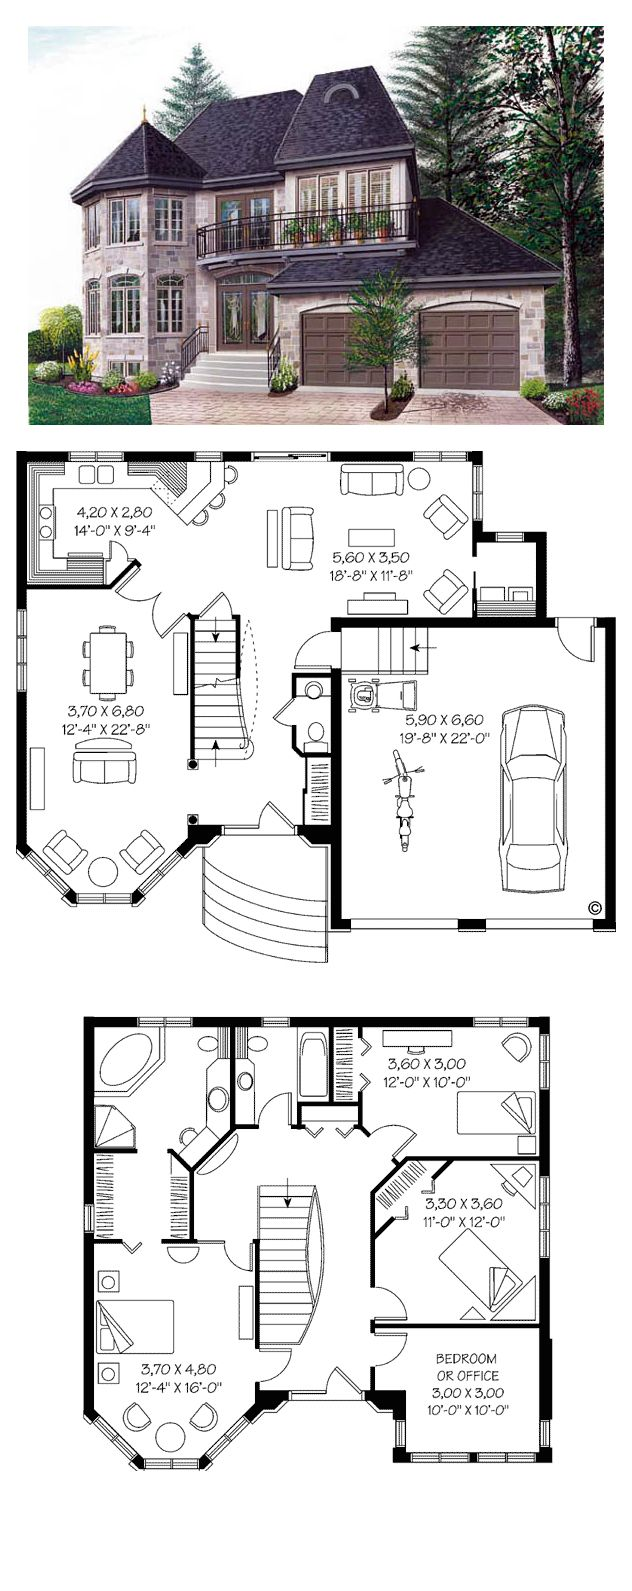 68 best sims 4 house blueprints images on pinterest for Sims 2 house designs floor plans